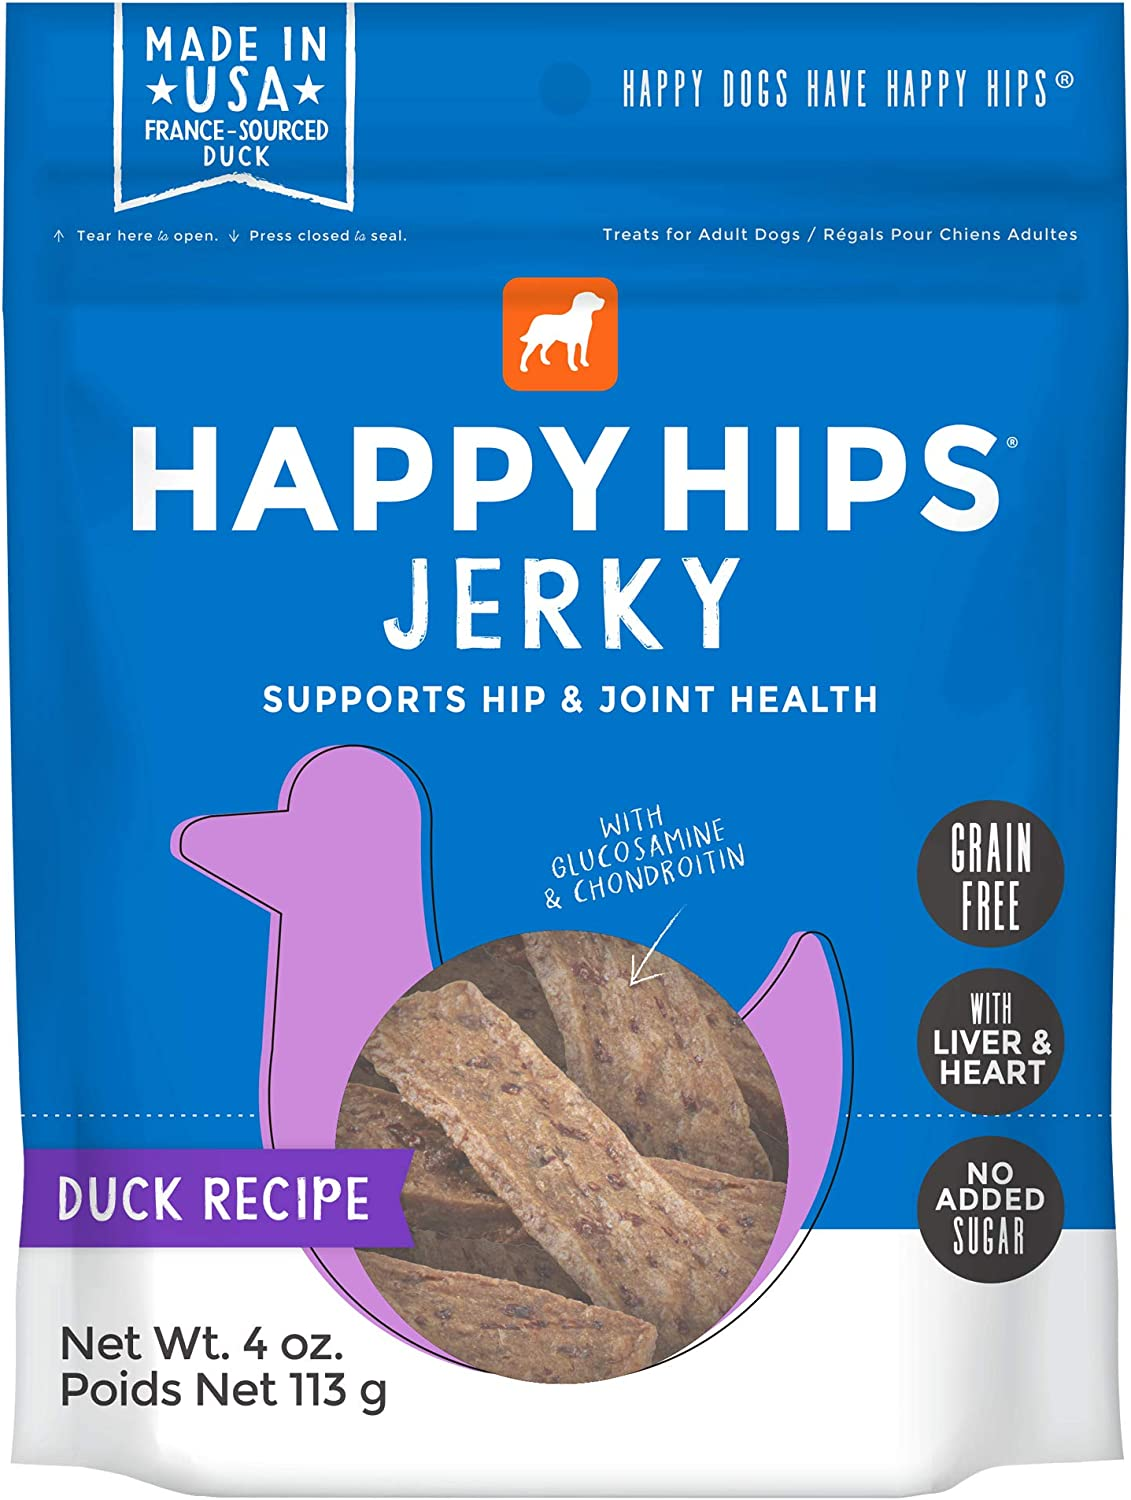 Happy Hips Grain Free Jerky Dog Treats - Made in USA with Glucosamine & Chondroitin to Support Hip & Joint Health - Duck Recipe